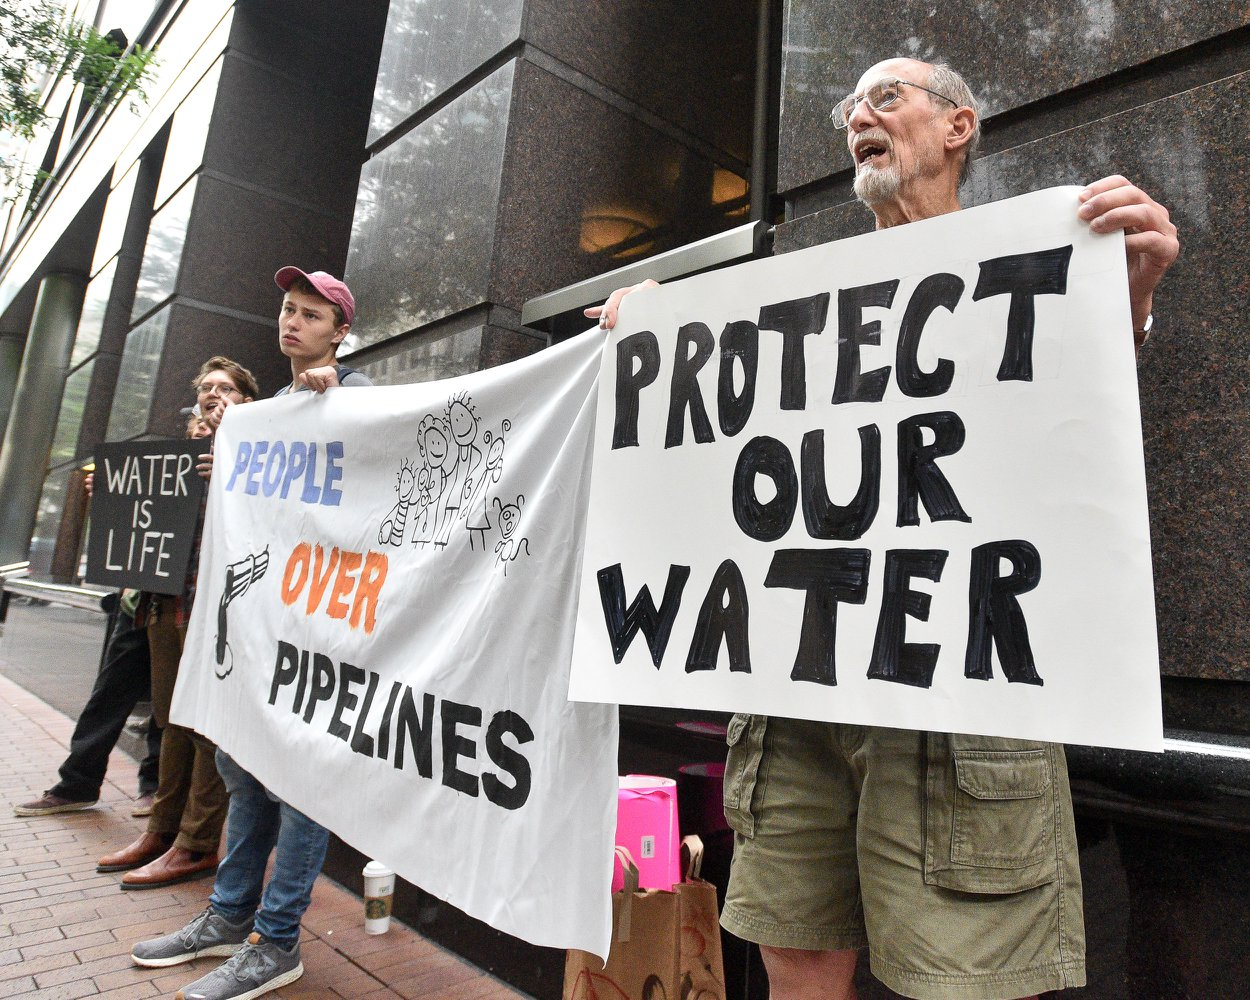 appalachians against pipelines